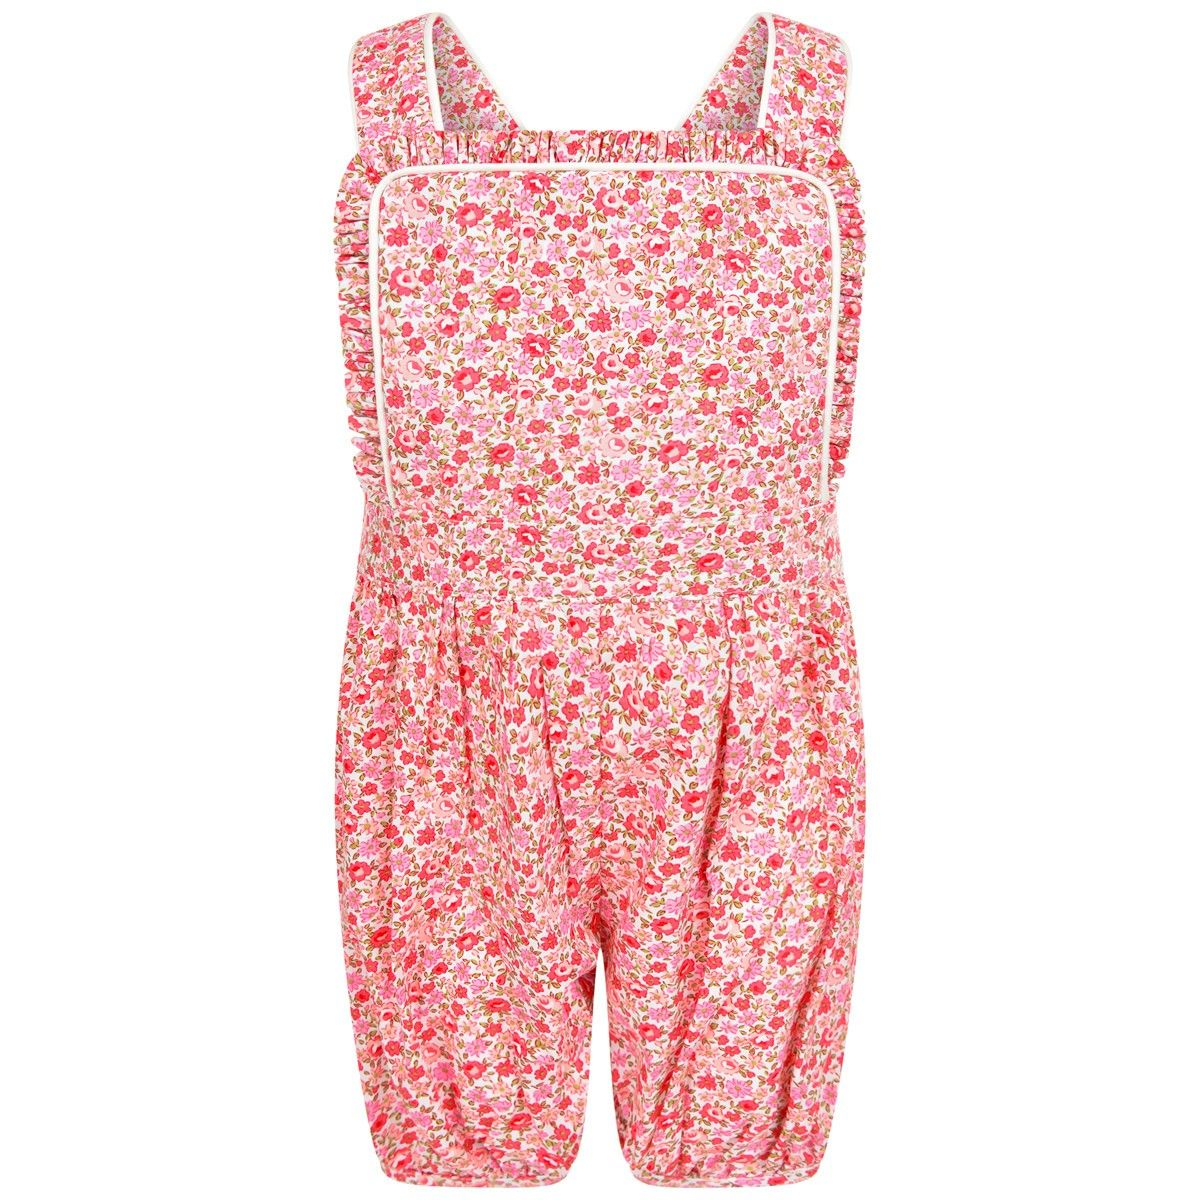 Baby pink dungaree dress  Rachel Riley Pink Floral Frill Dungarees  Baby Girl clothes